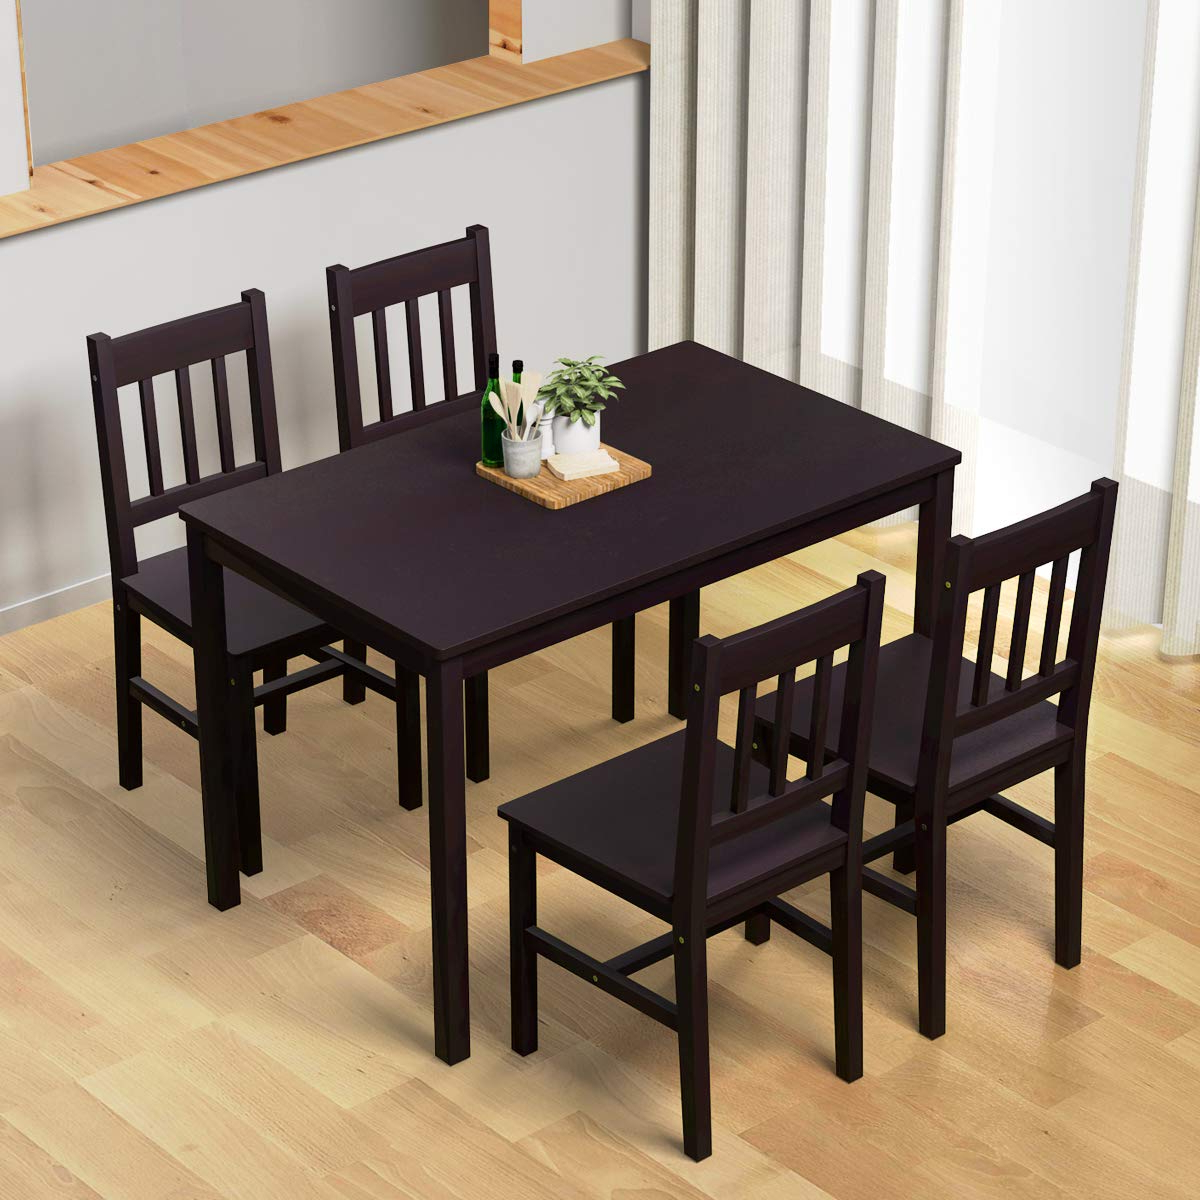 Trendy Sundberg 5 Piece Solid Wood Dining Sets Inside Giantex 5 Piece Wood Dining Table Set 4 Chairs Home Kitchen (View 22 of 25)